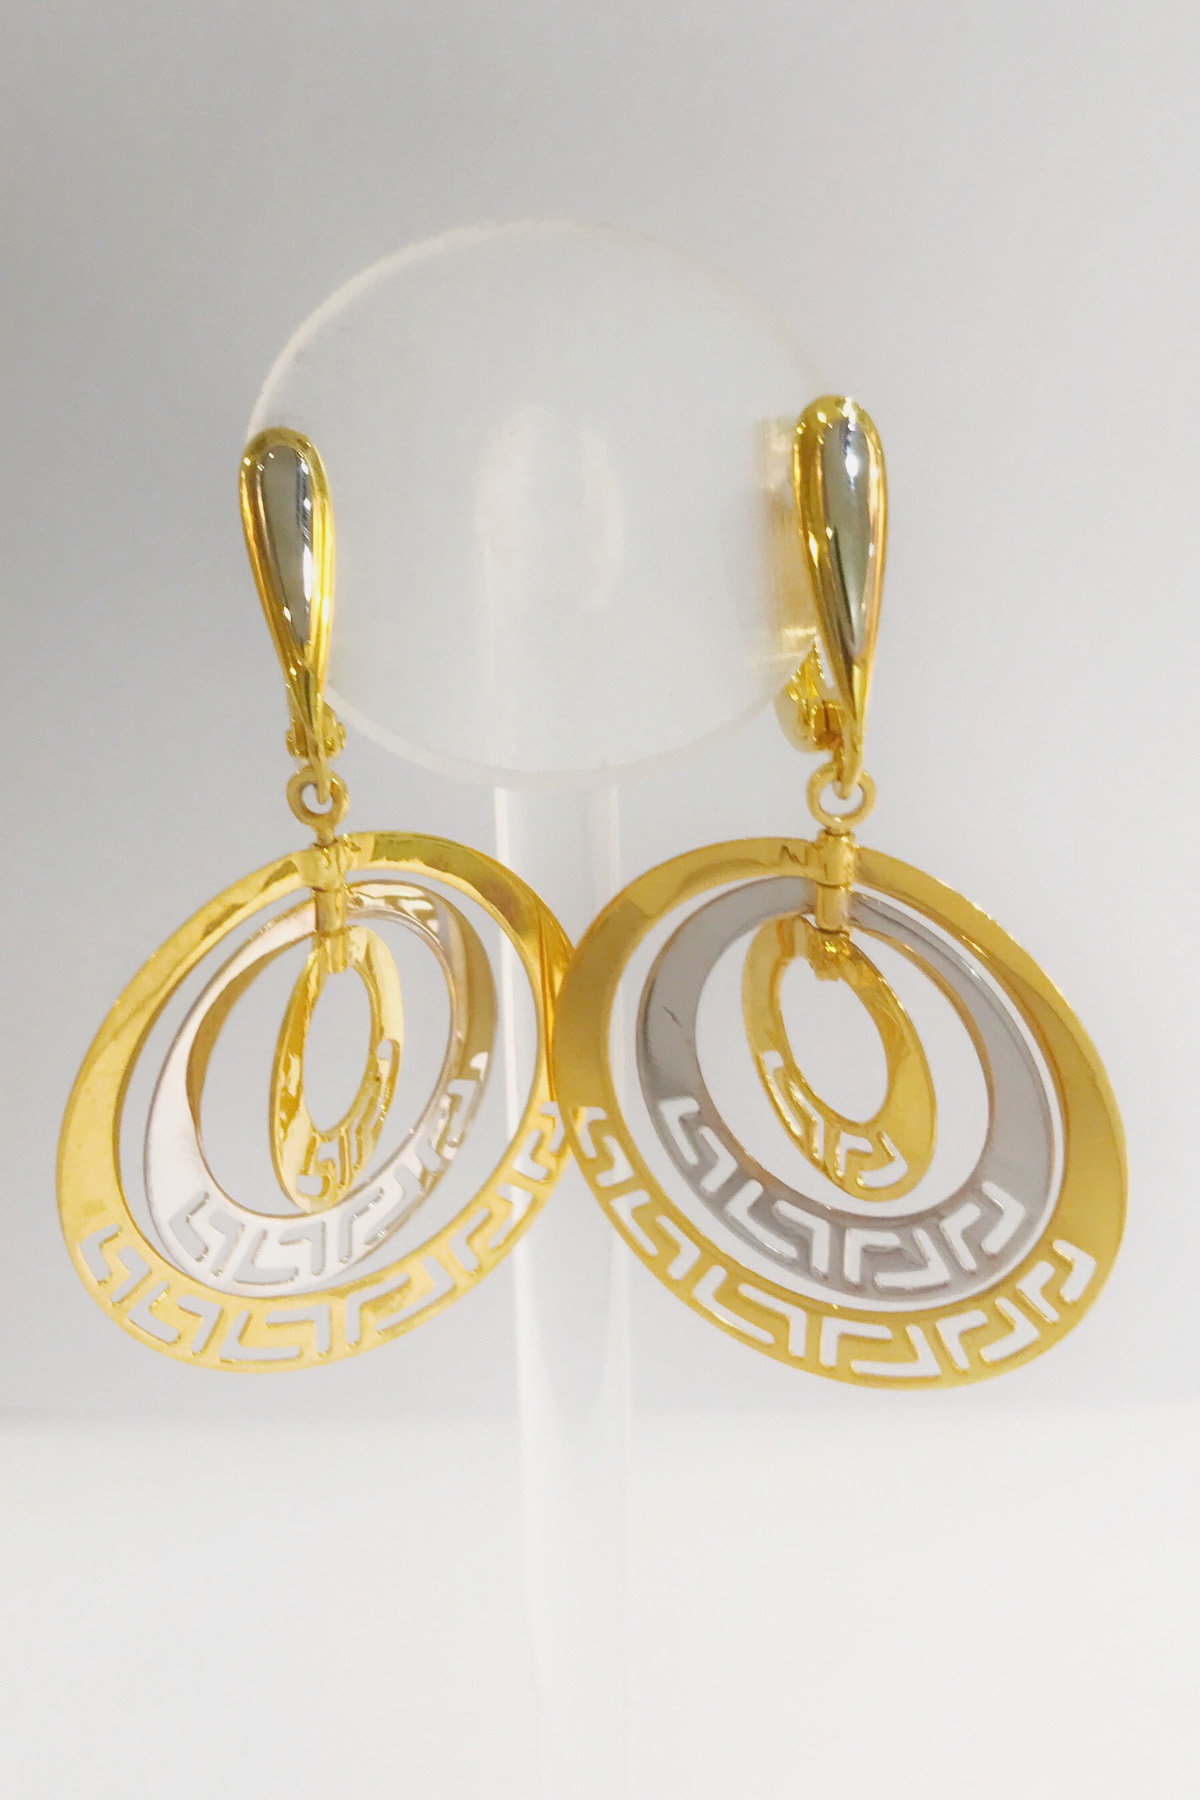 fendi earrings jayann jewelry